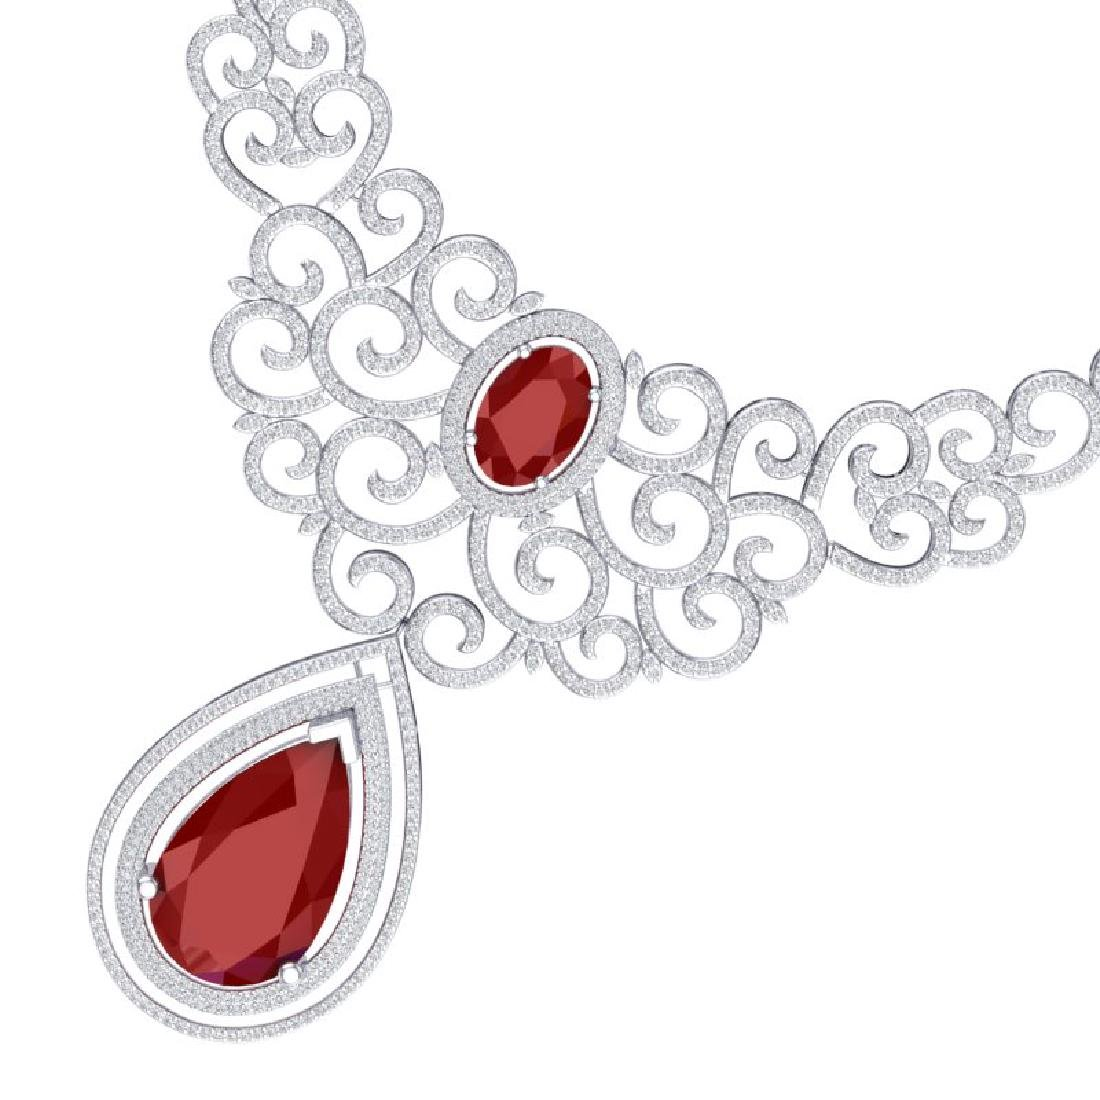 87.52 CTW Royalty Ruby & VS Diamond Necklace 18K White